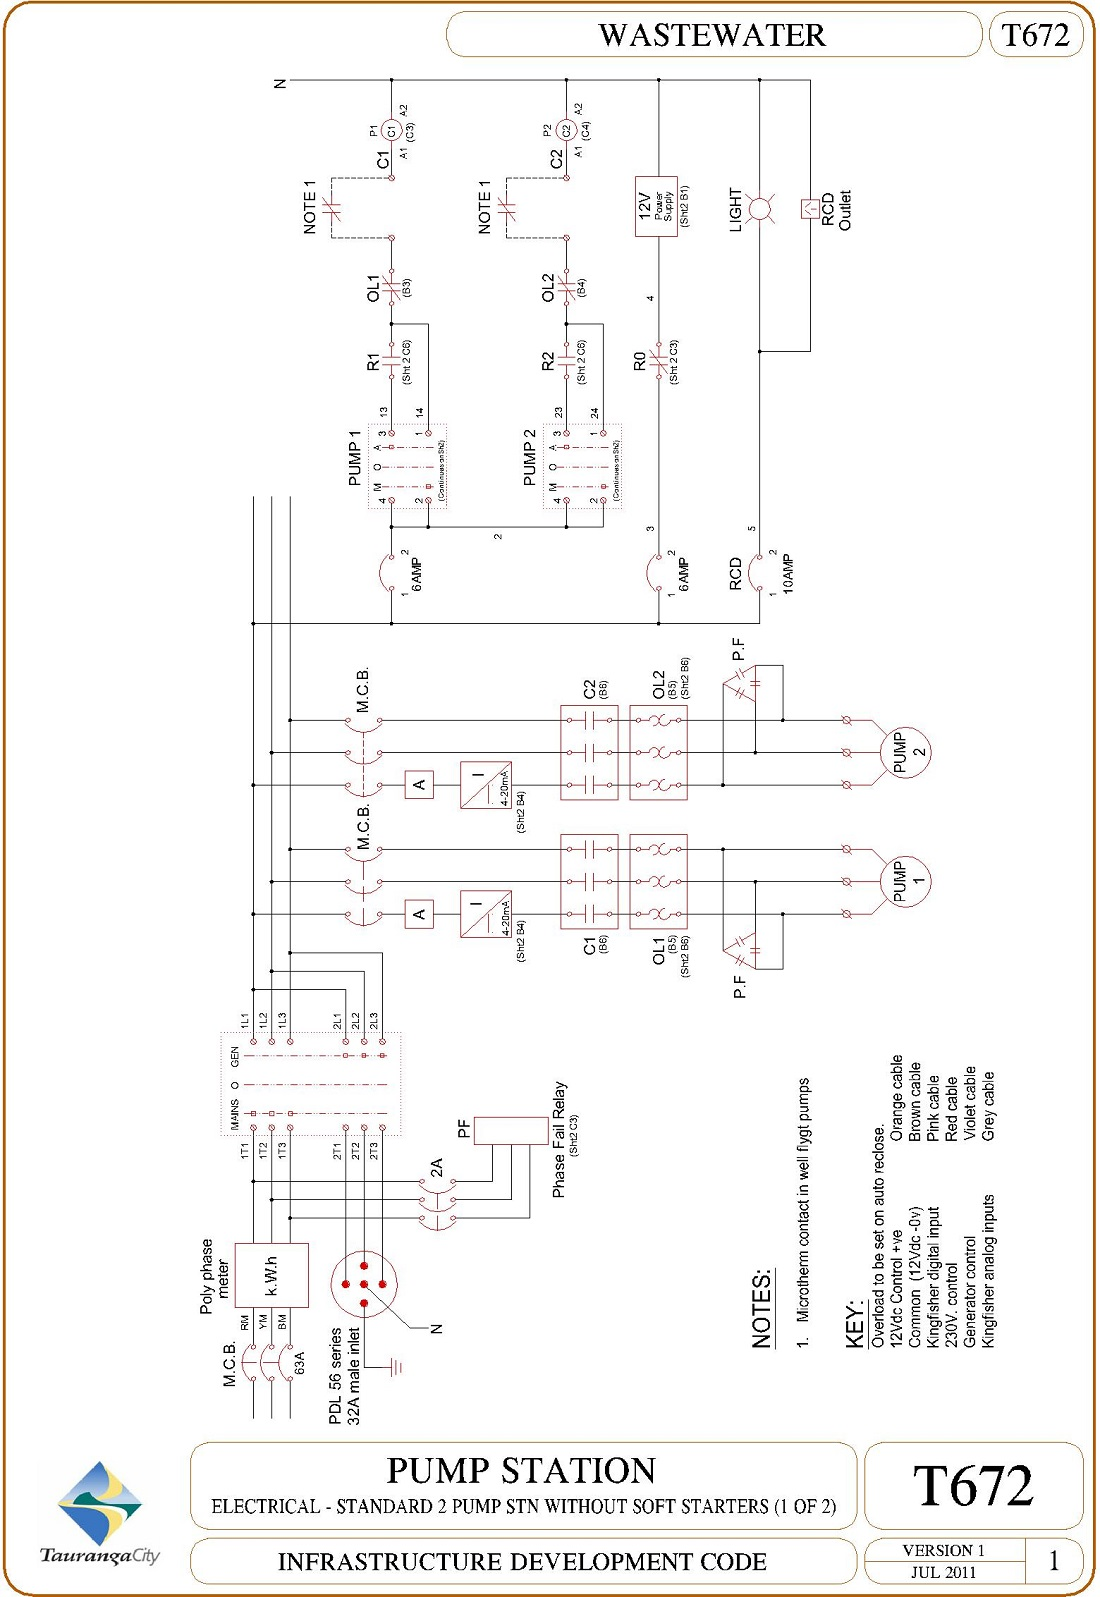 Pump Station - Electrical - Standard 2 Pump Stn Without Soft Starters (1 of 2)